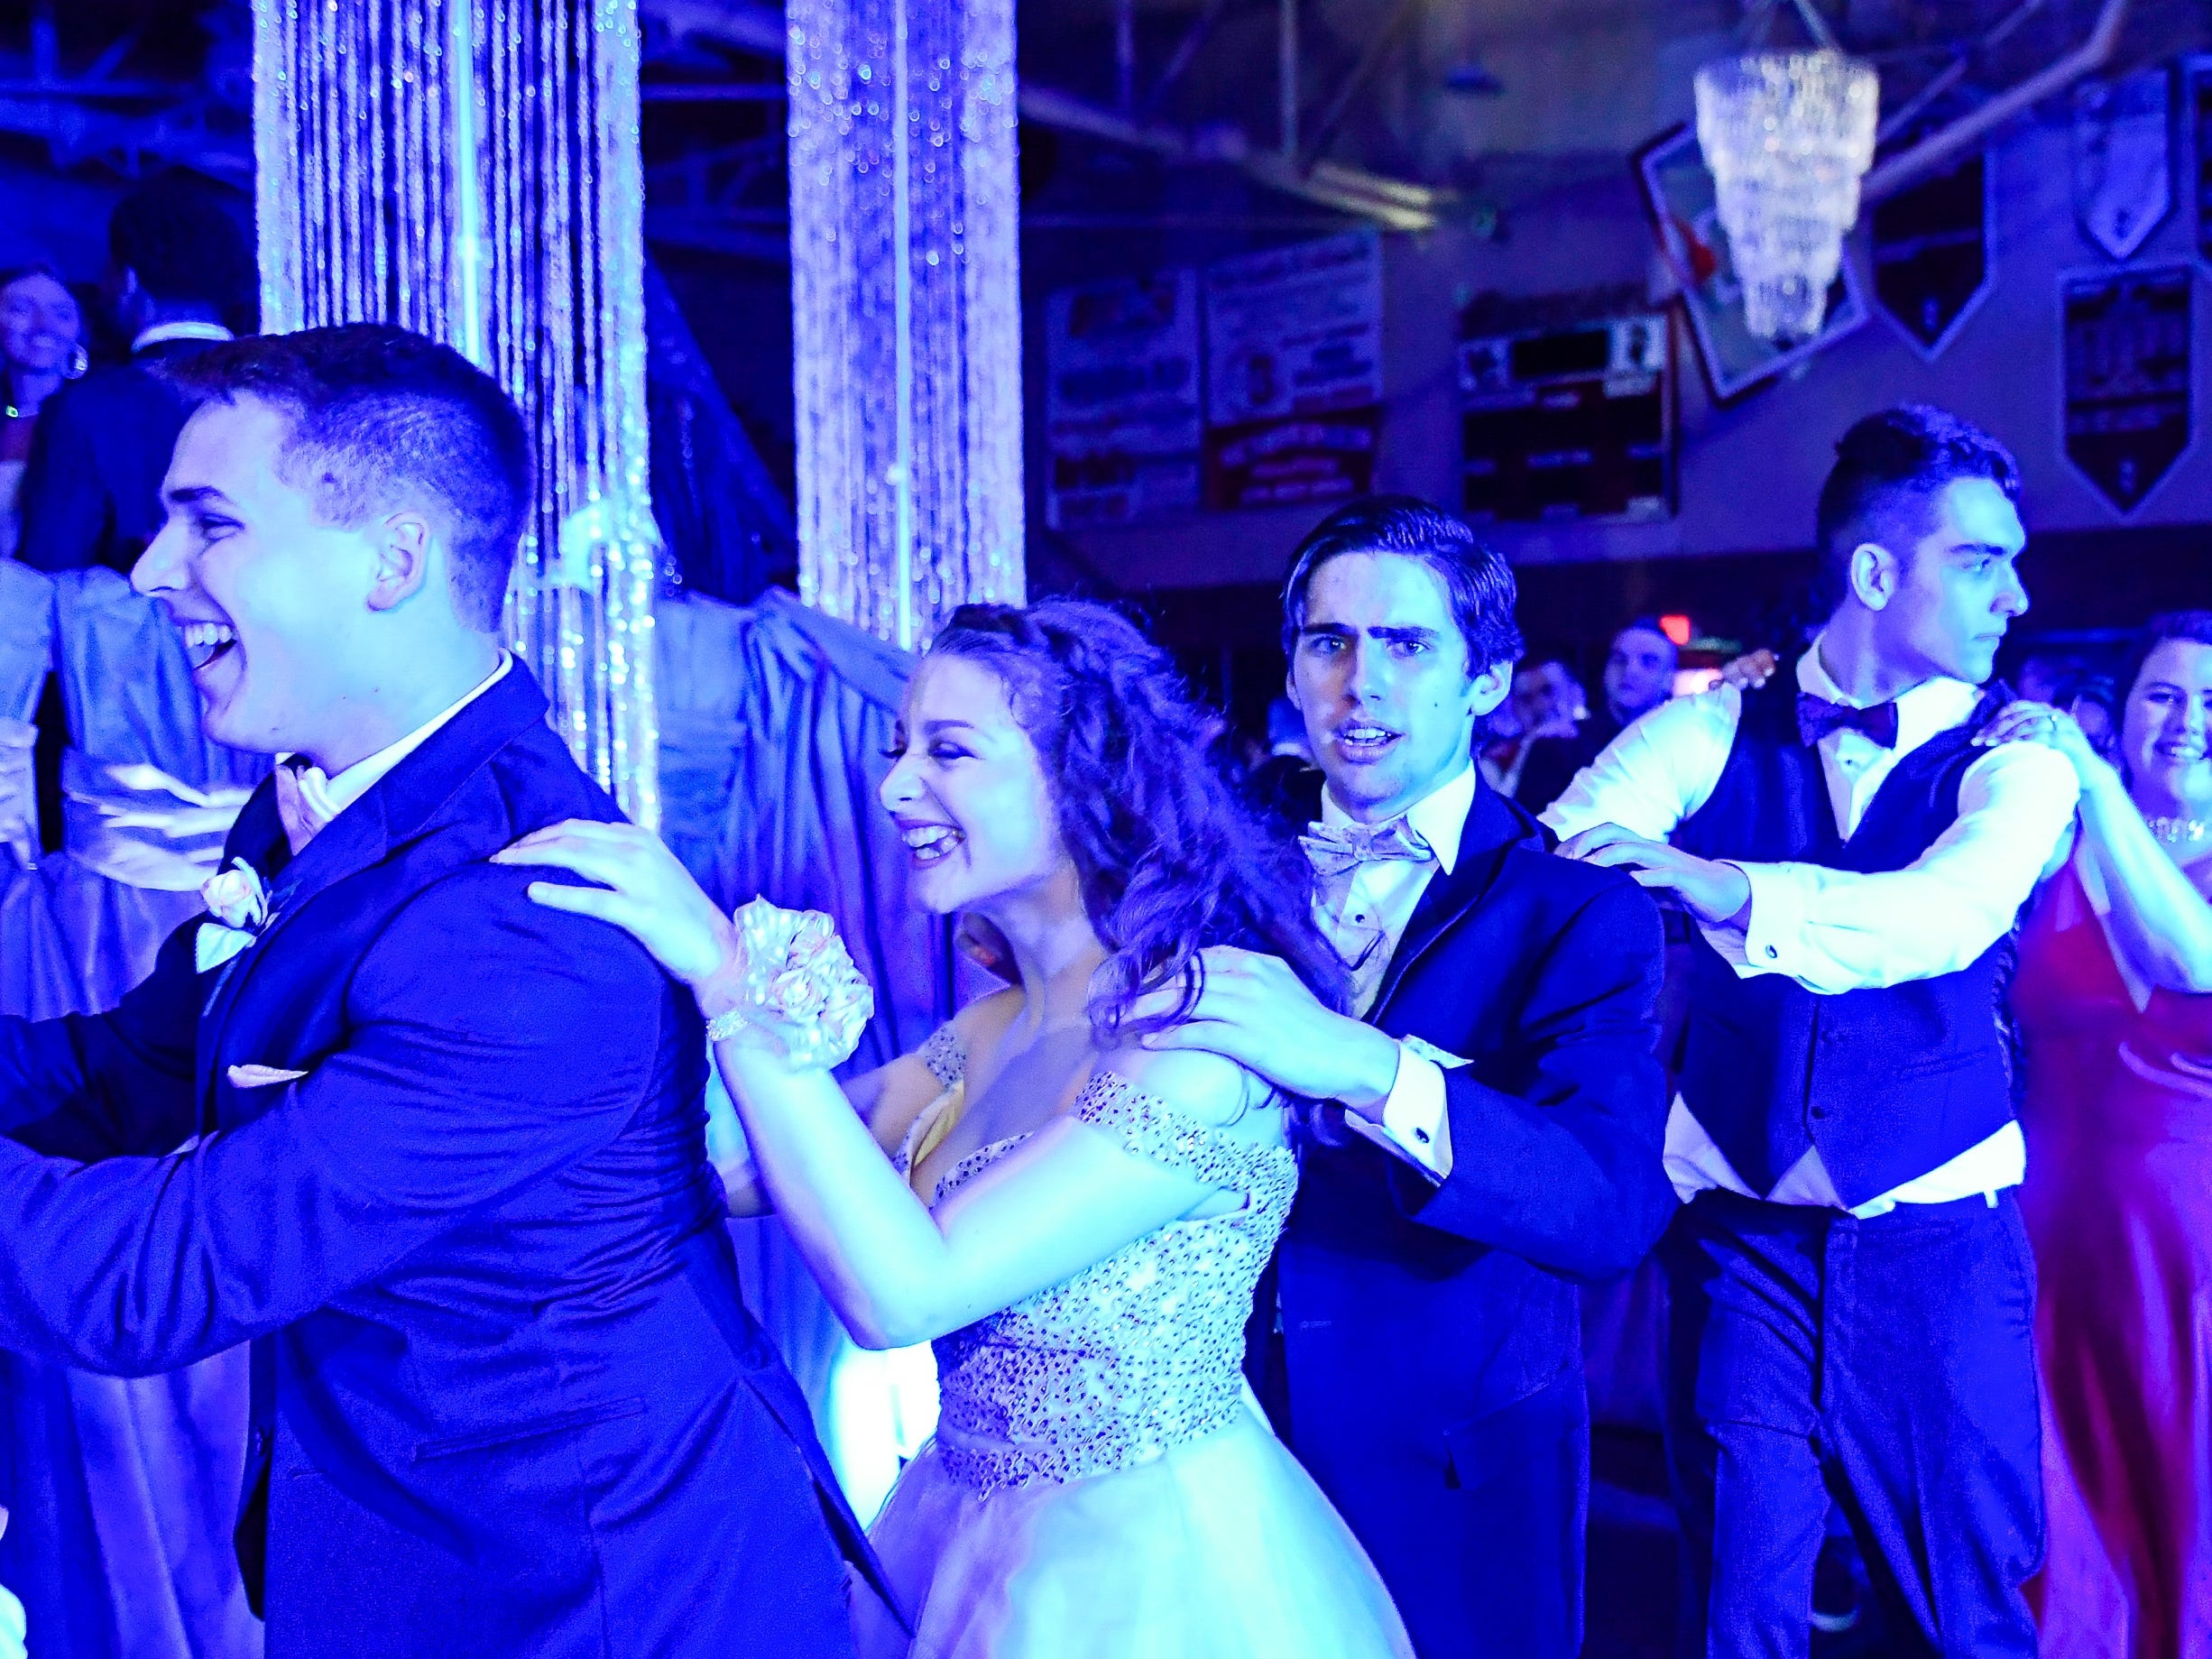 A Conga line winds its way through the dance floor at the Henderson County High Prom held at Colonel Gym Saturday, April 13, 2019.